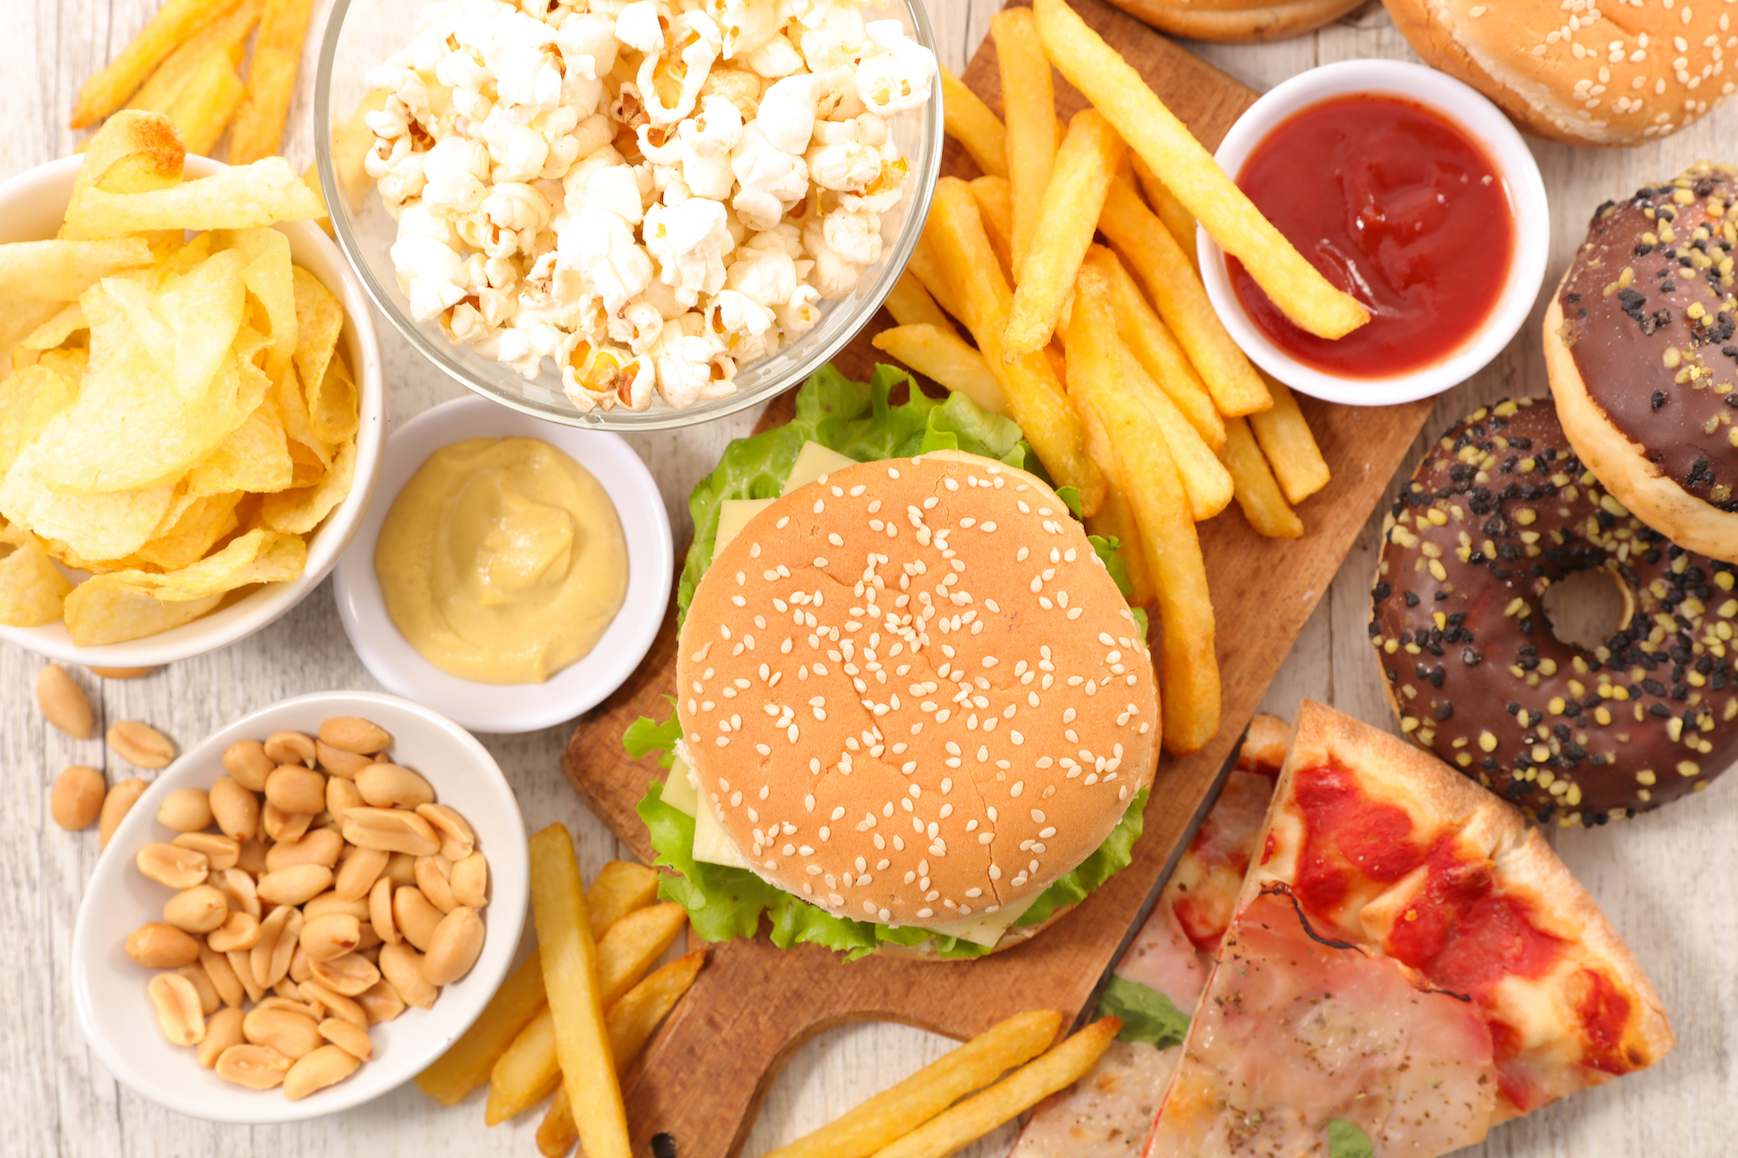 Junk Food Found To Be Twice As Distracting As Healthy Food